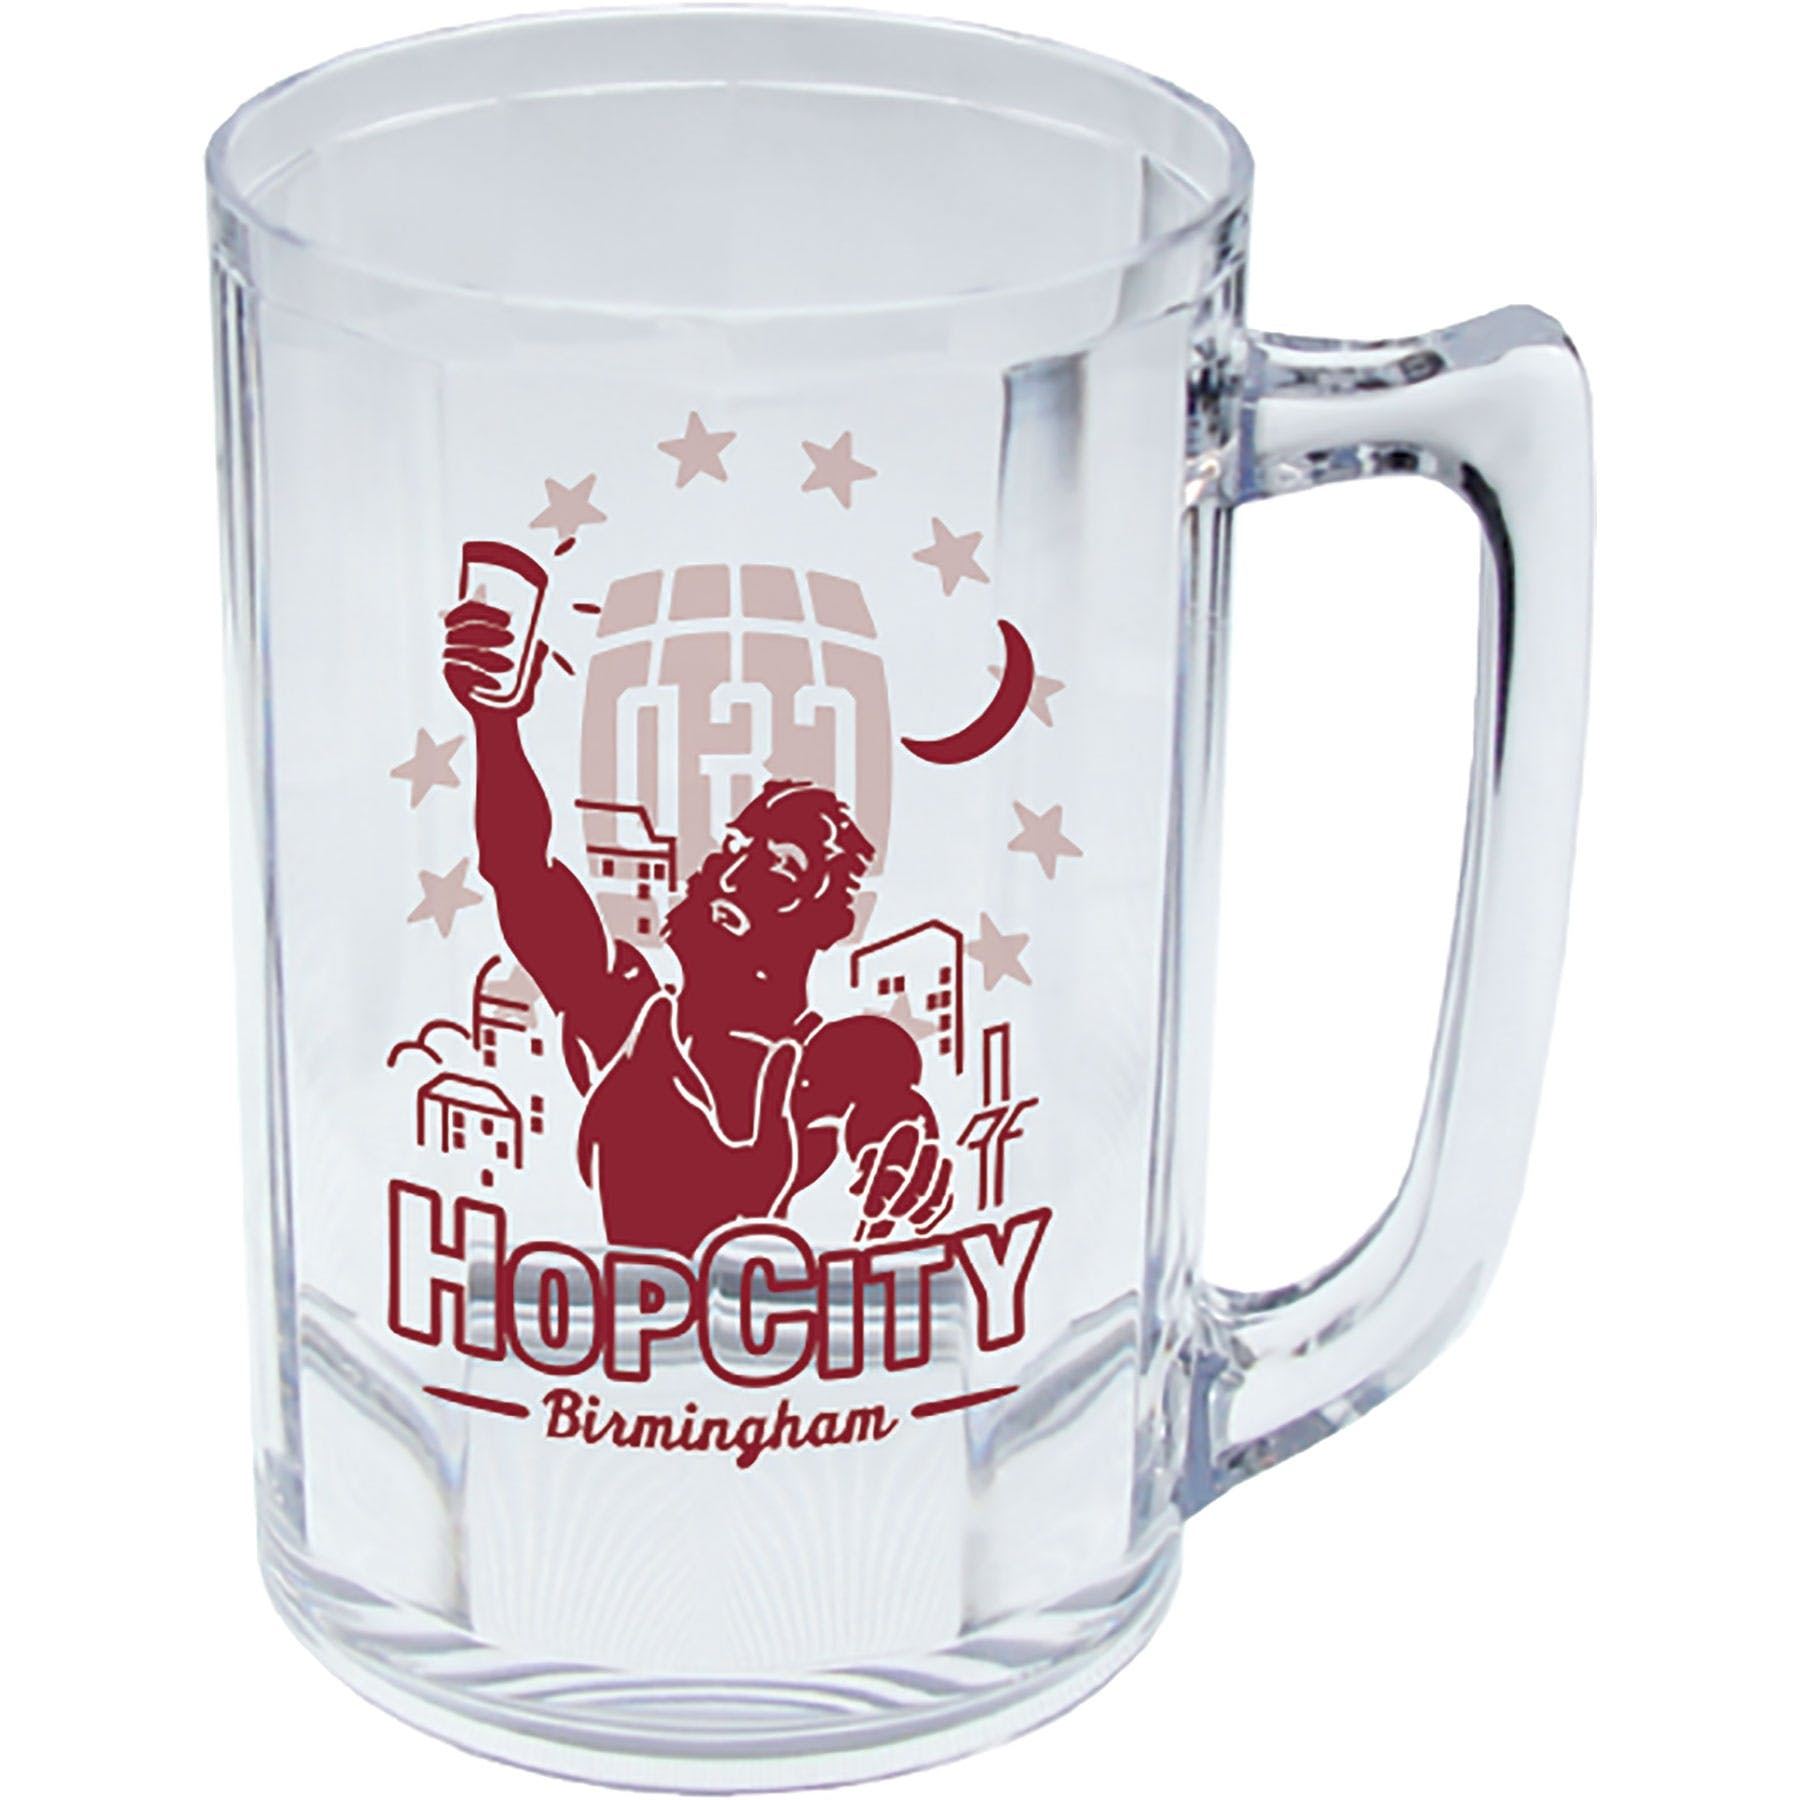 5 Oz. Beer Mug (Item # HDNNN-EUZXK) Customized Beer Mug sold by InkEasy